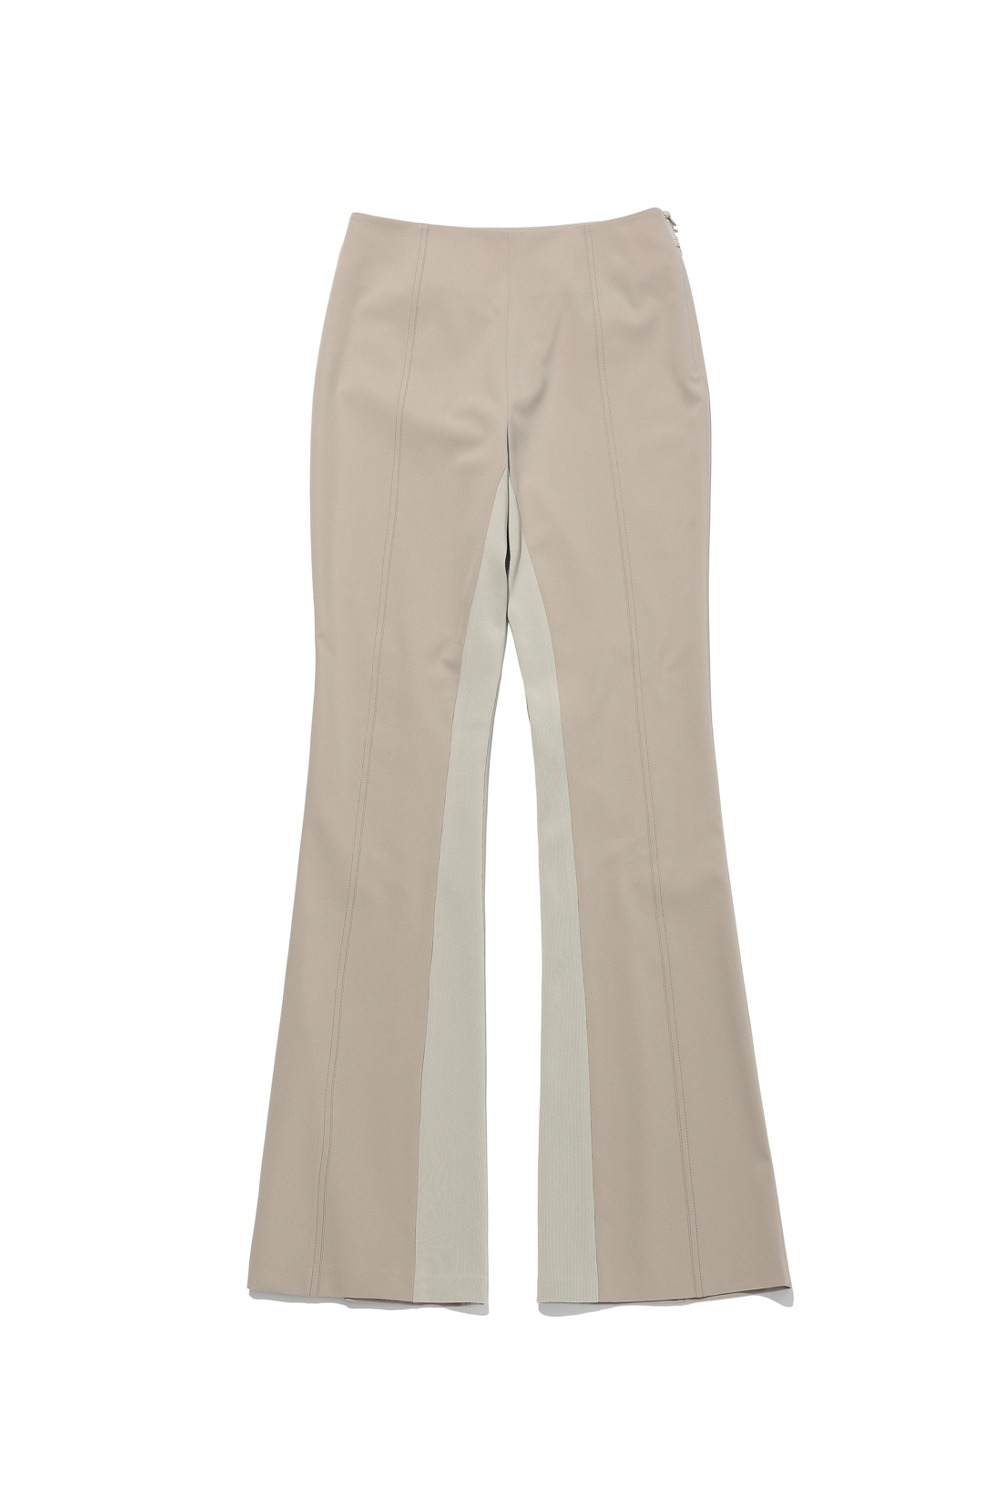 2021 CALL OUT_PANELED FLARE PANTS_CREAM